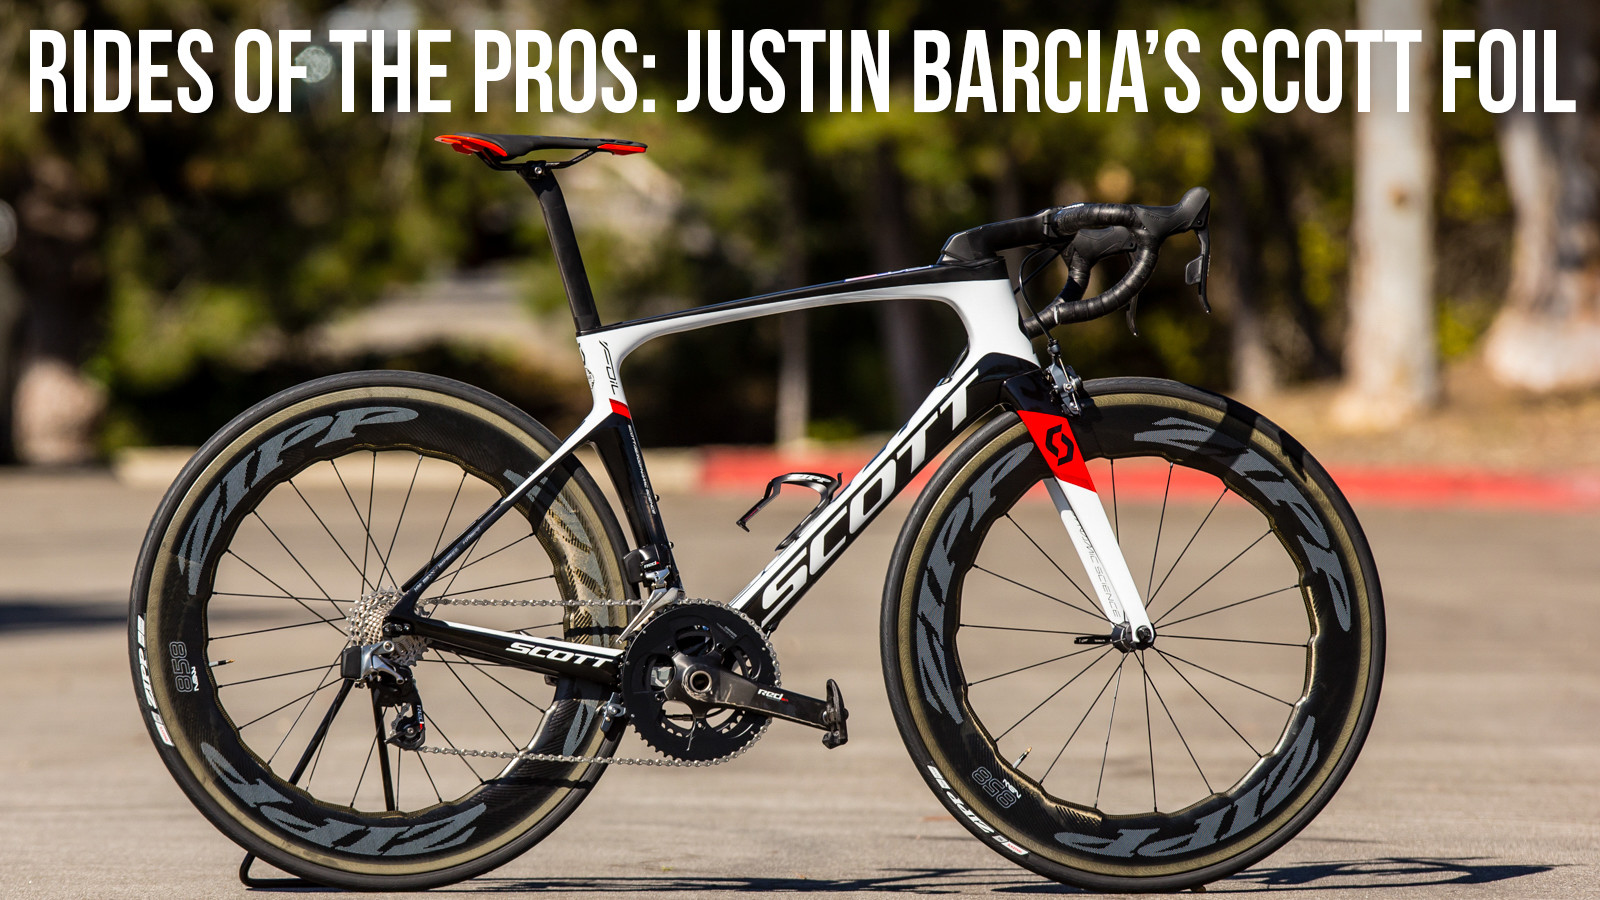 Training Rides of the Pros: Justin Barcia's Scott Foil Road Bike